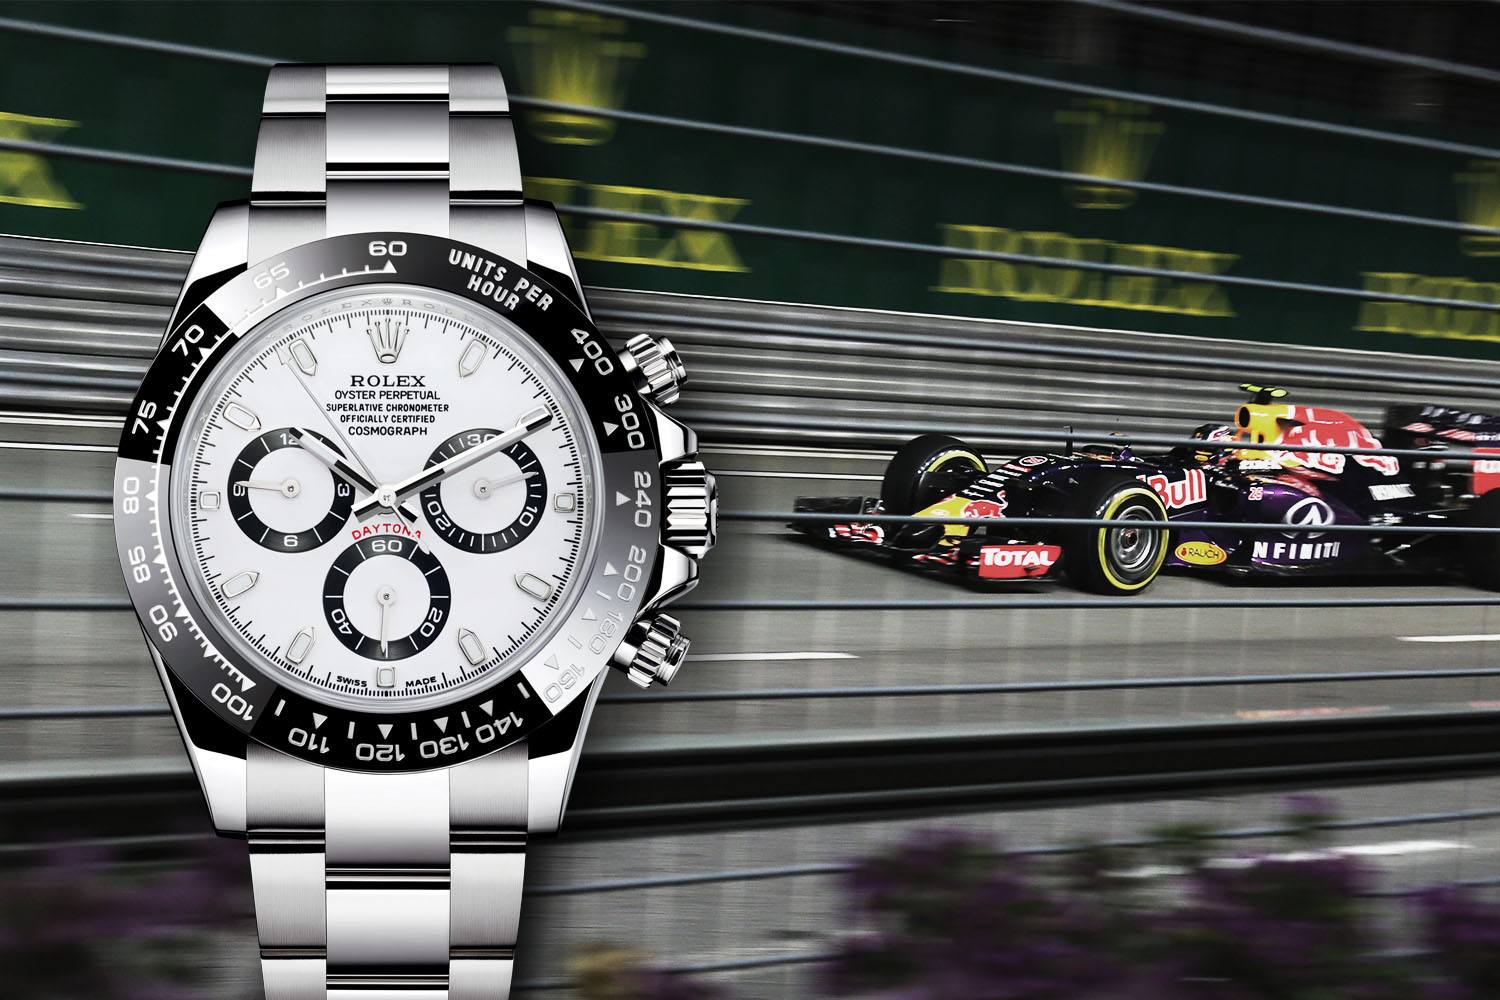 projects and luxury auto havok s radically racing parts by premium masterpiece watch disrupting racer affordable again watches chronograph havokwatches built with men original a inspired soul vintage